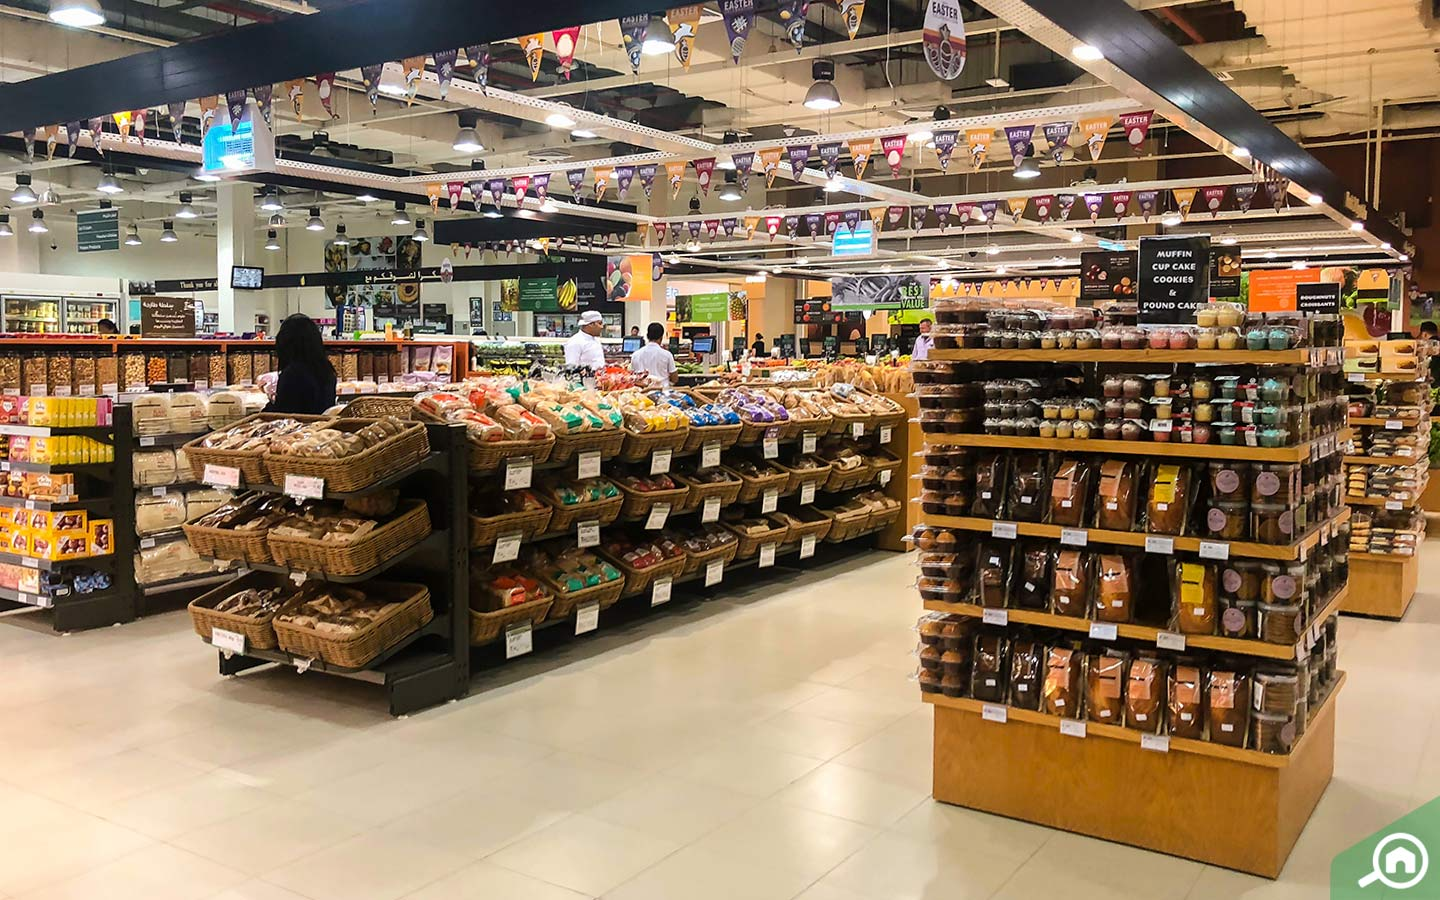 Bakery section of Spinneys Supermarkets in Dubai Silicon Oasis